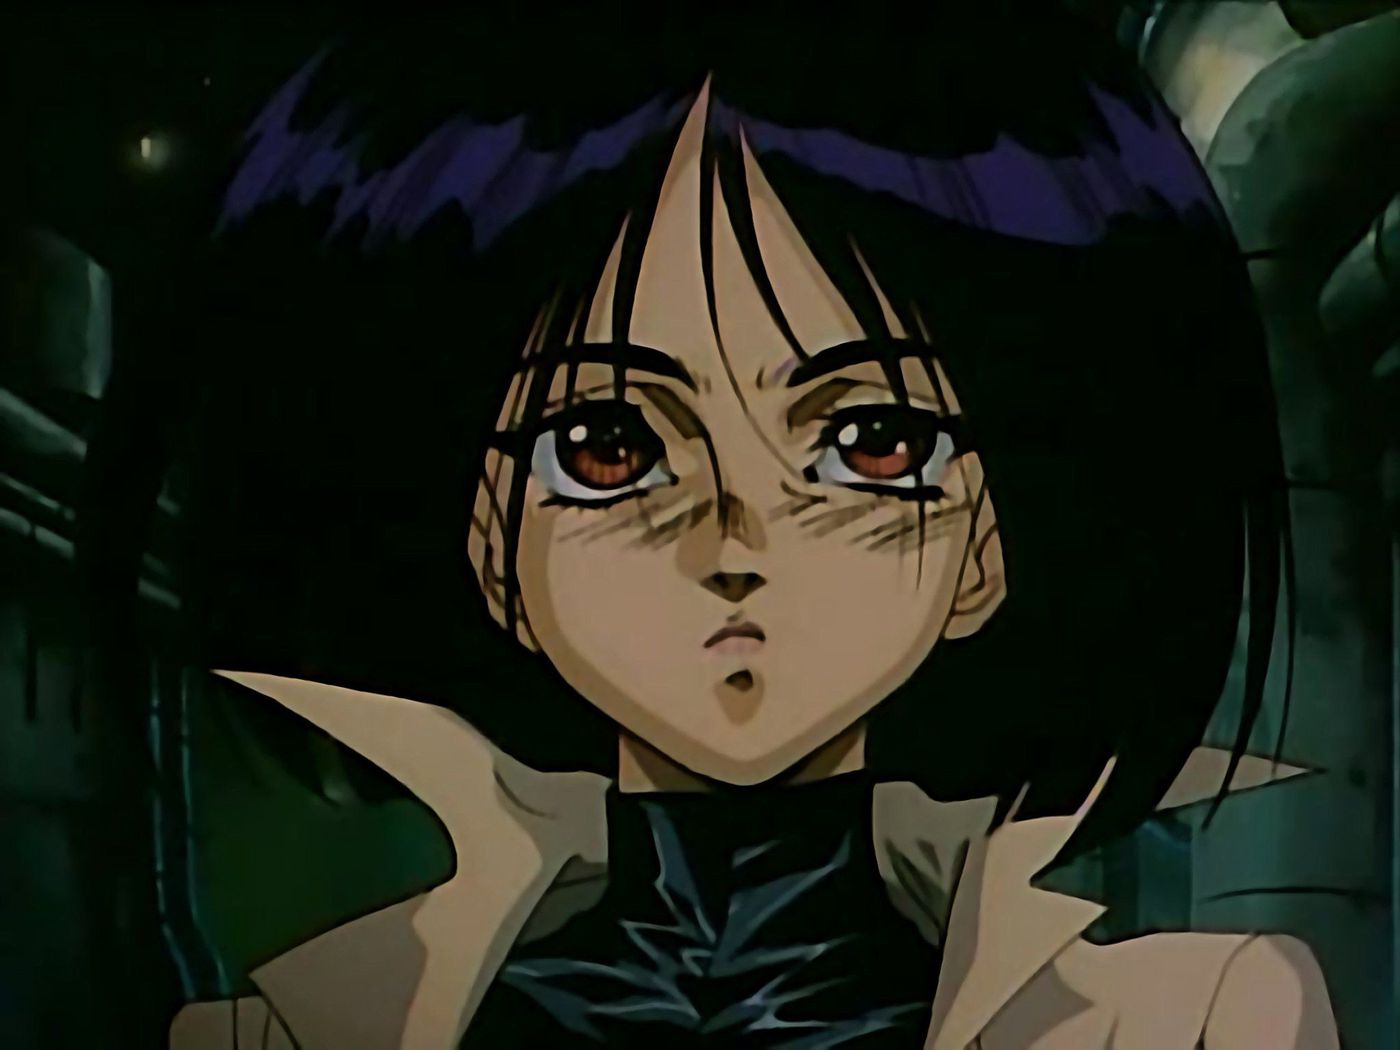 Battle Angels Anime Stopped Short In The 90s But Why